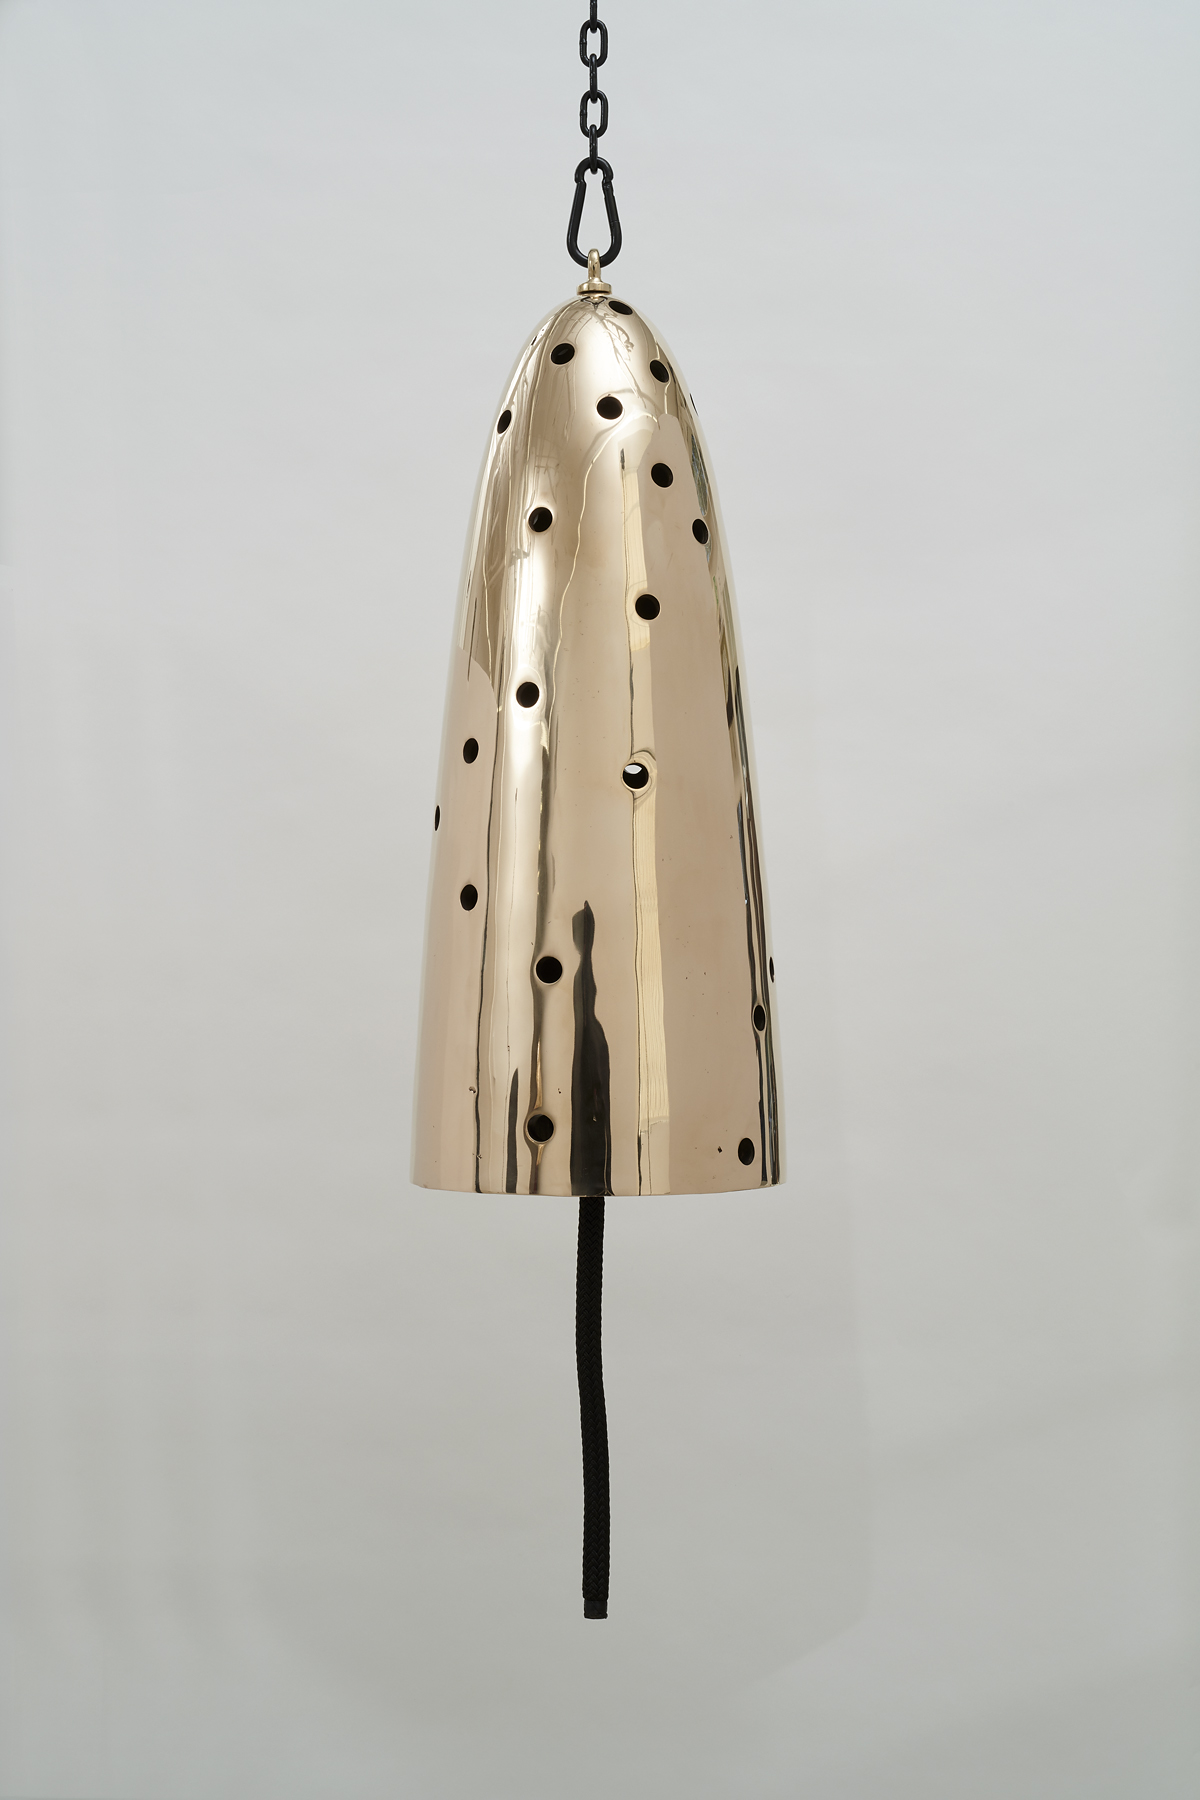 Davina Semo,  Seducer , 2019, Polished and patinated cast bronze bell, whipped., nylon line, wooden clapper, powder-coated chain, hardware, Bell: 32 inches tall x 13 inches diameter / 81 cm tall x 33 cm diameter, overall dimensions variable